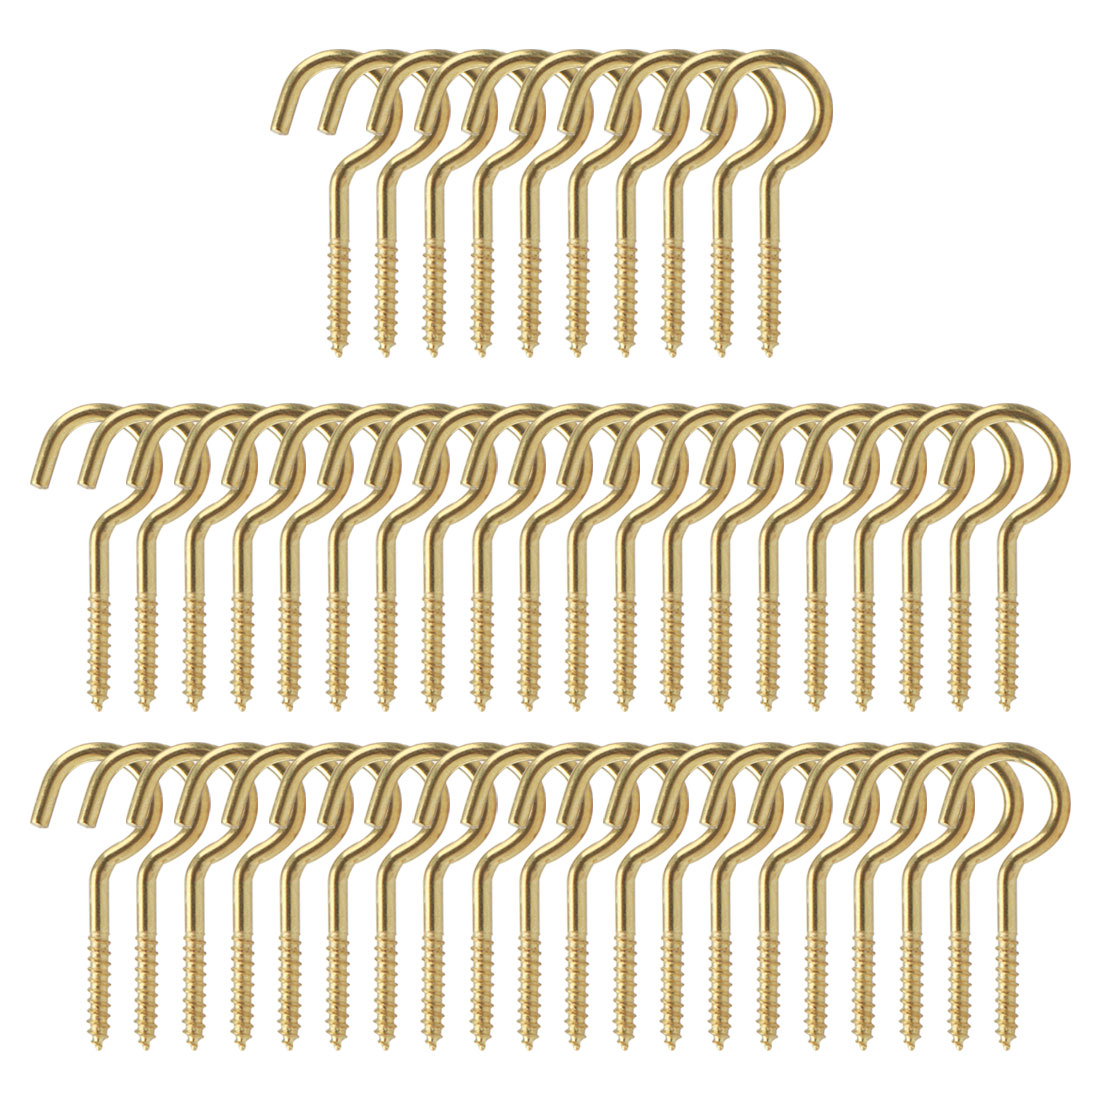 50pcs Cup Ceiling Hooks 3/4 Inch Durable Metal Screw in Hanger Hooks Gold Tone